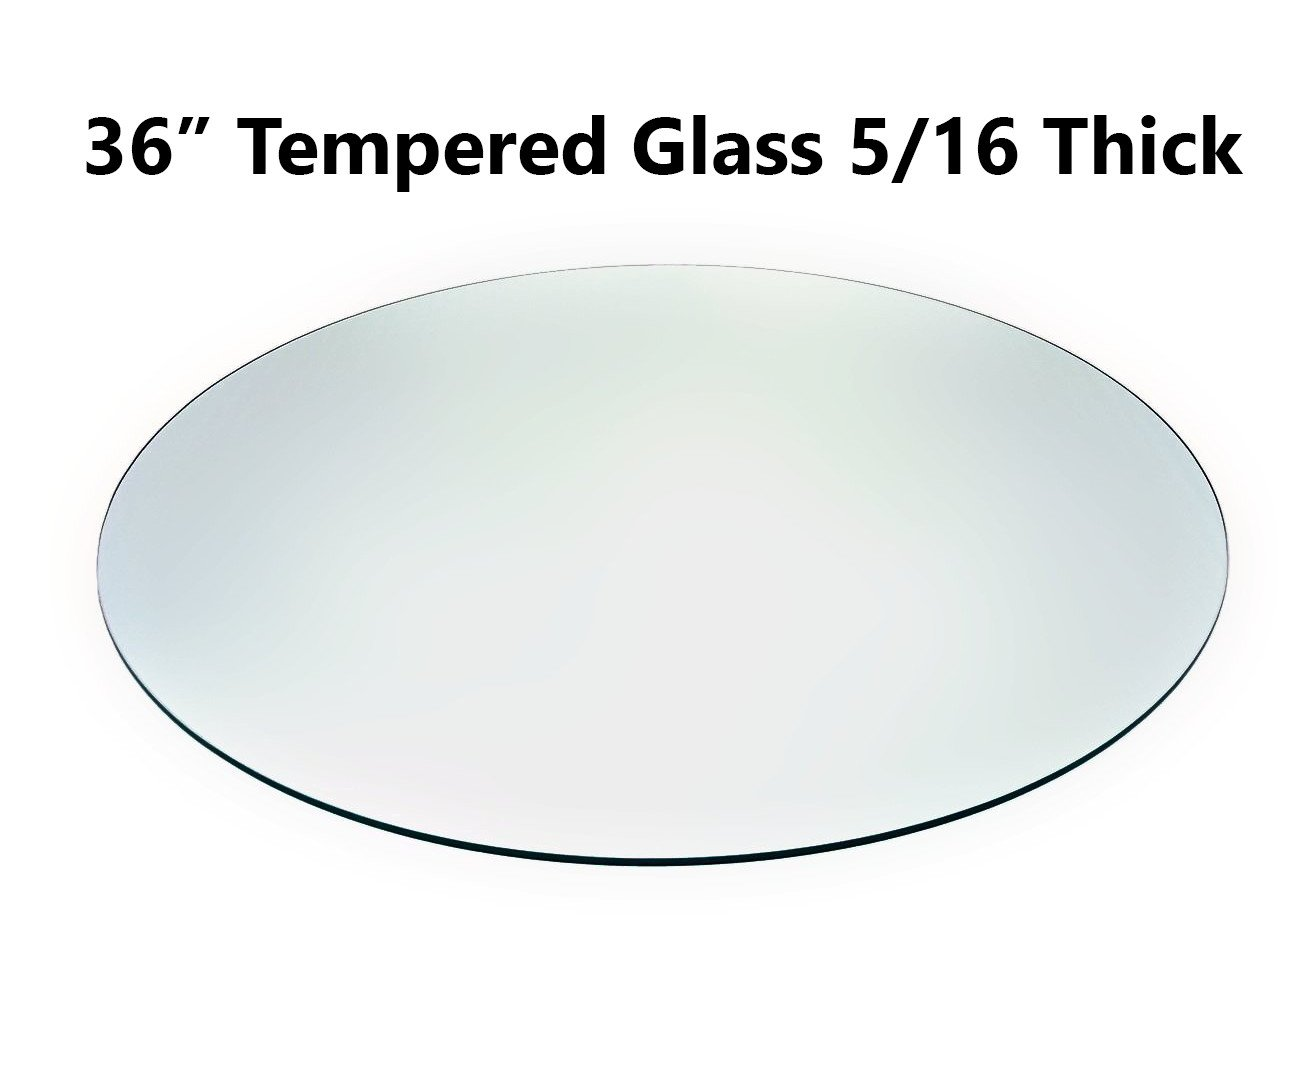 "Tempered Glass Table Top with Rounded Edge 36"" Round 5/16"" Thickness"